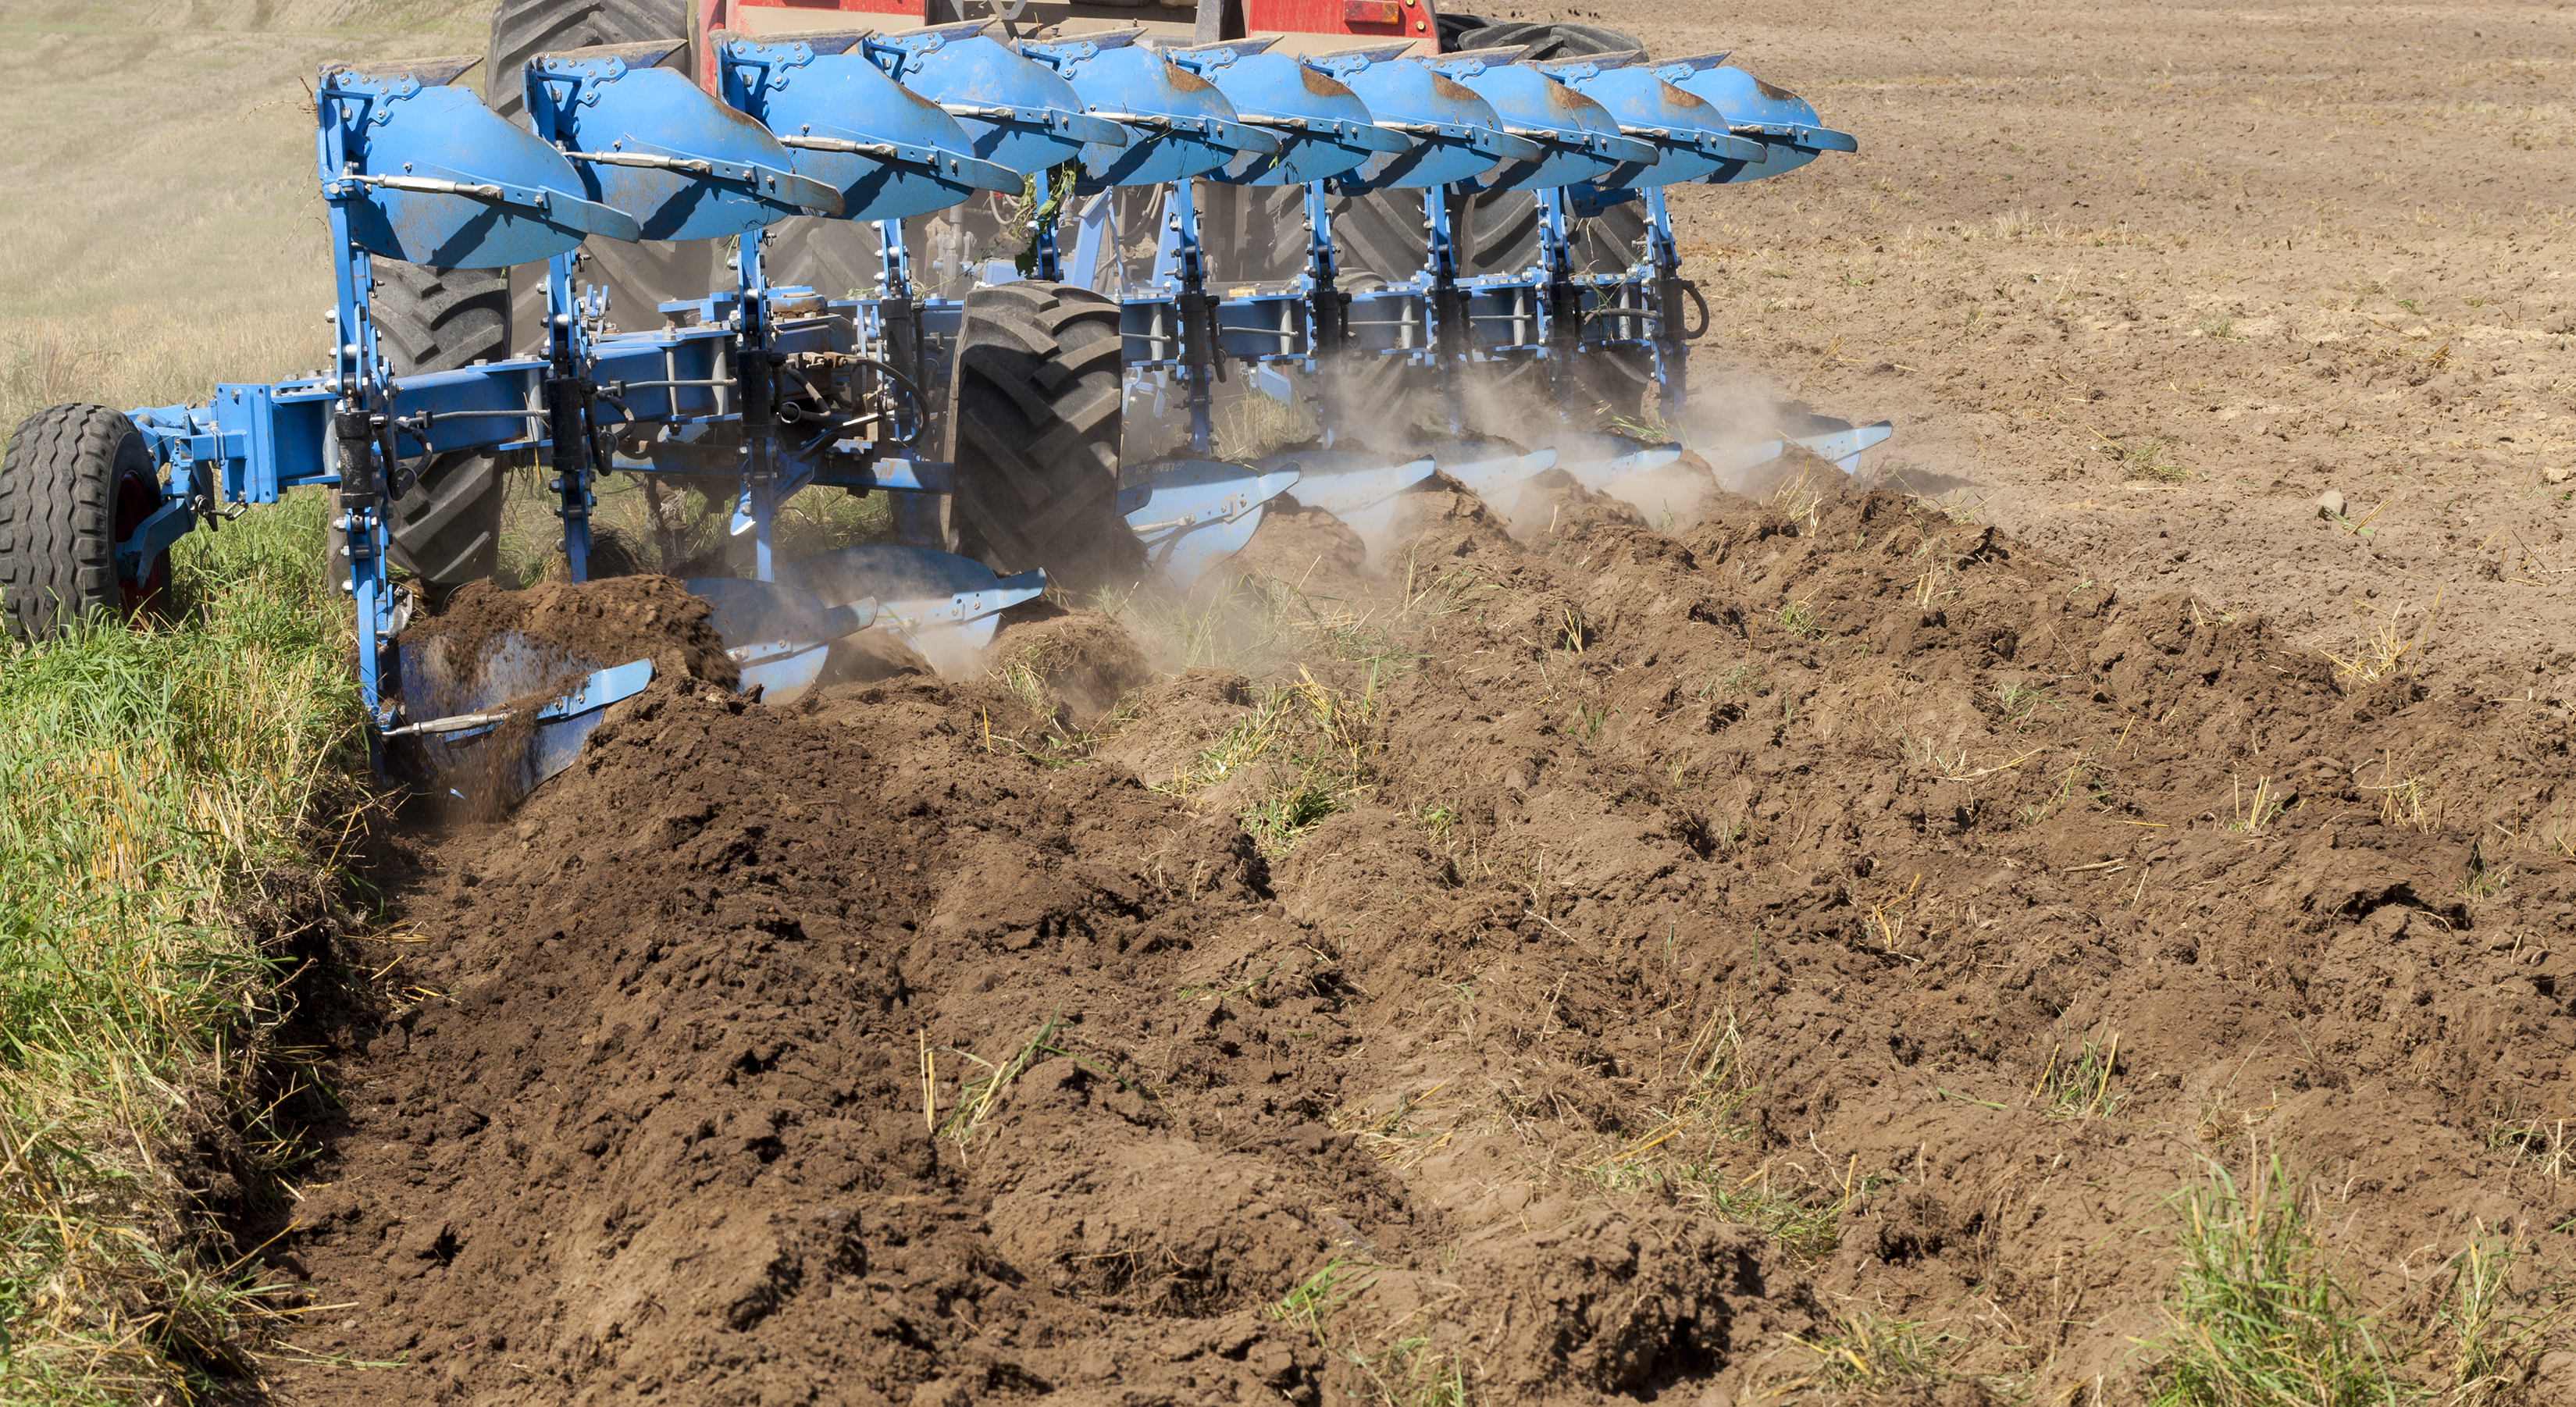 A List of Simple Machines Used in Agriculture   Career Trend